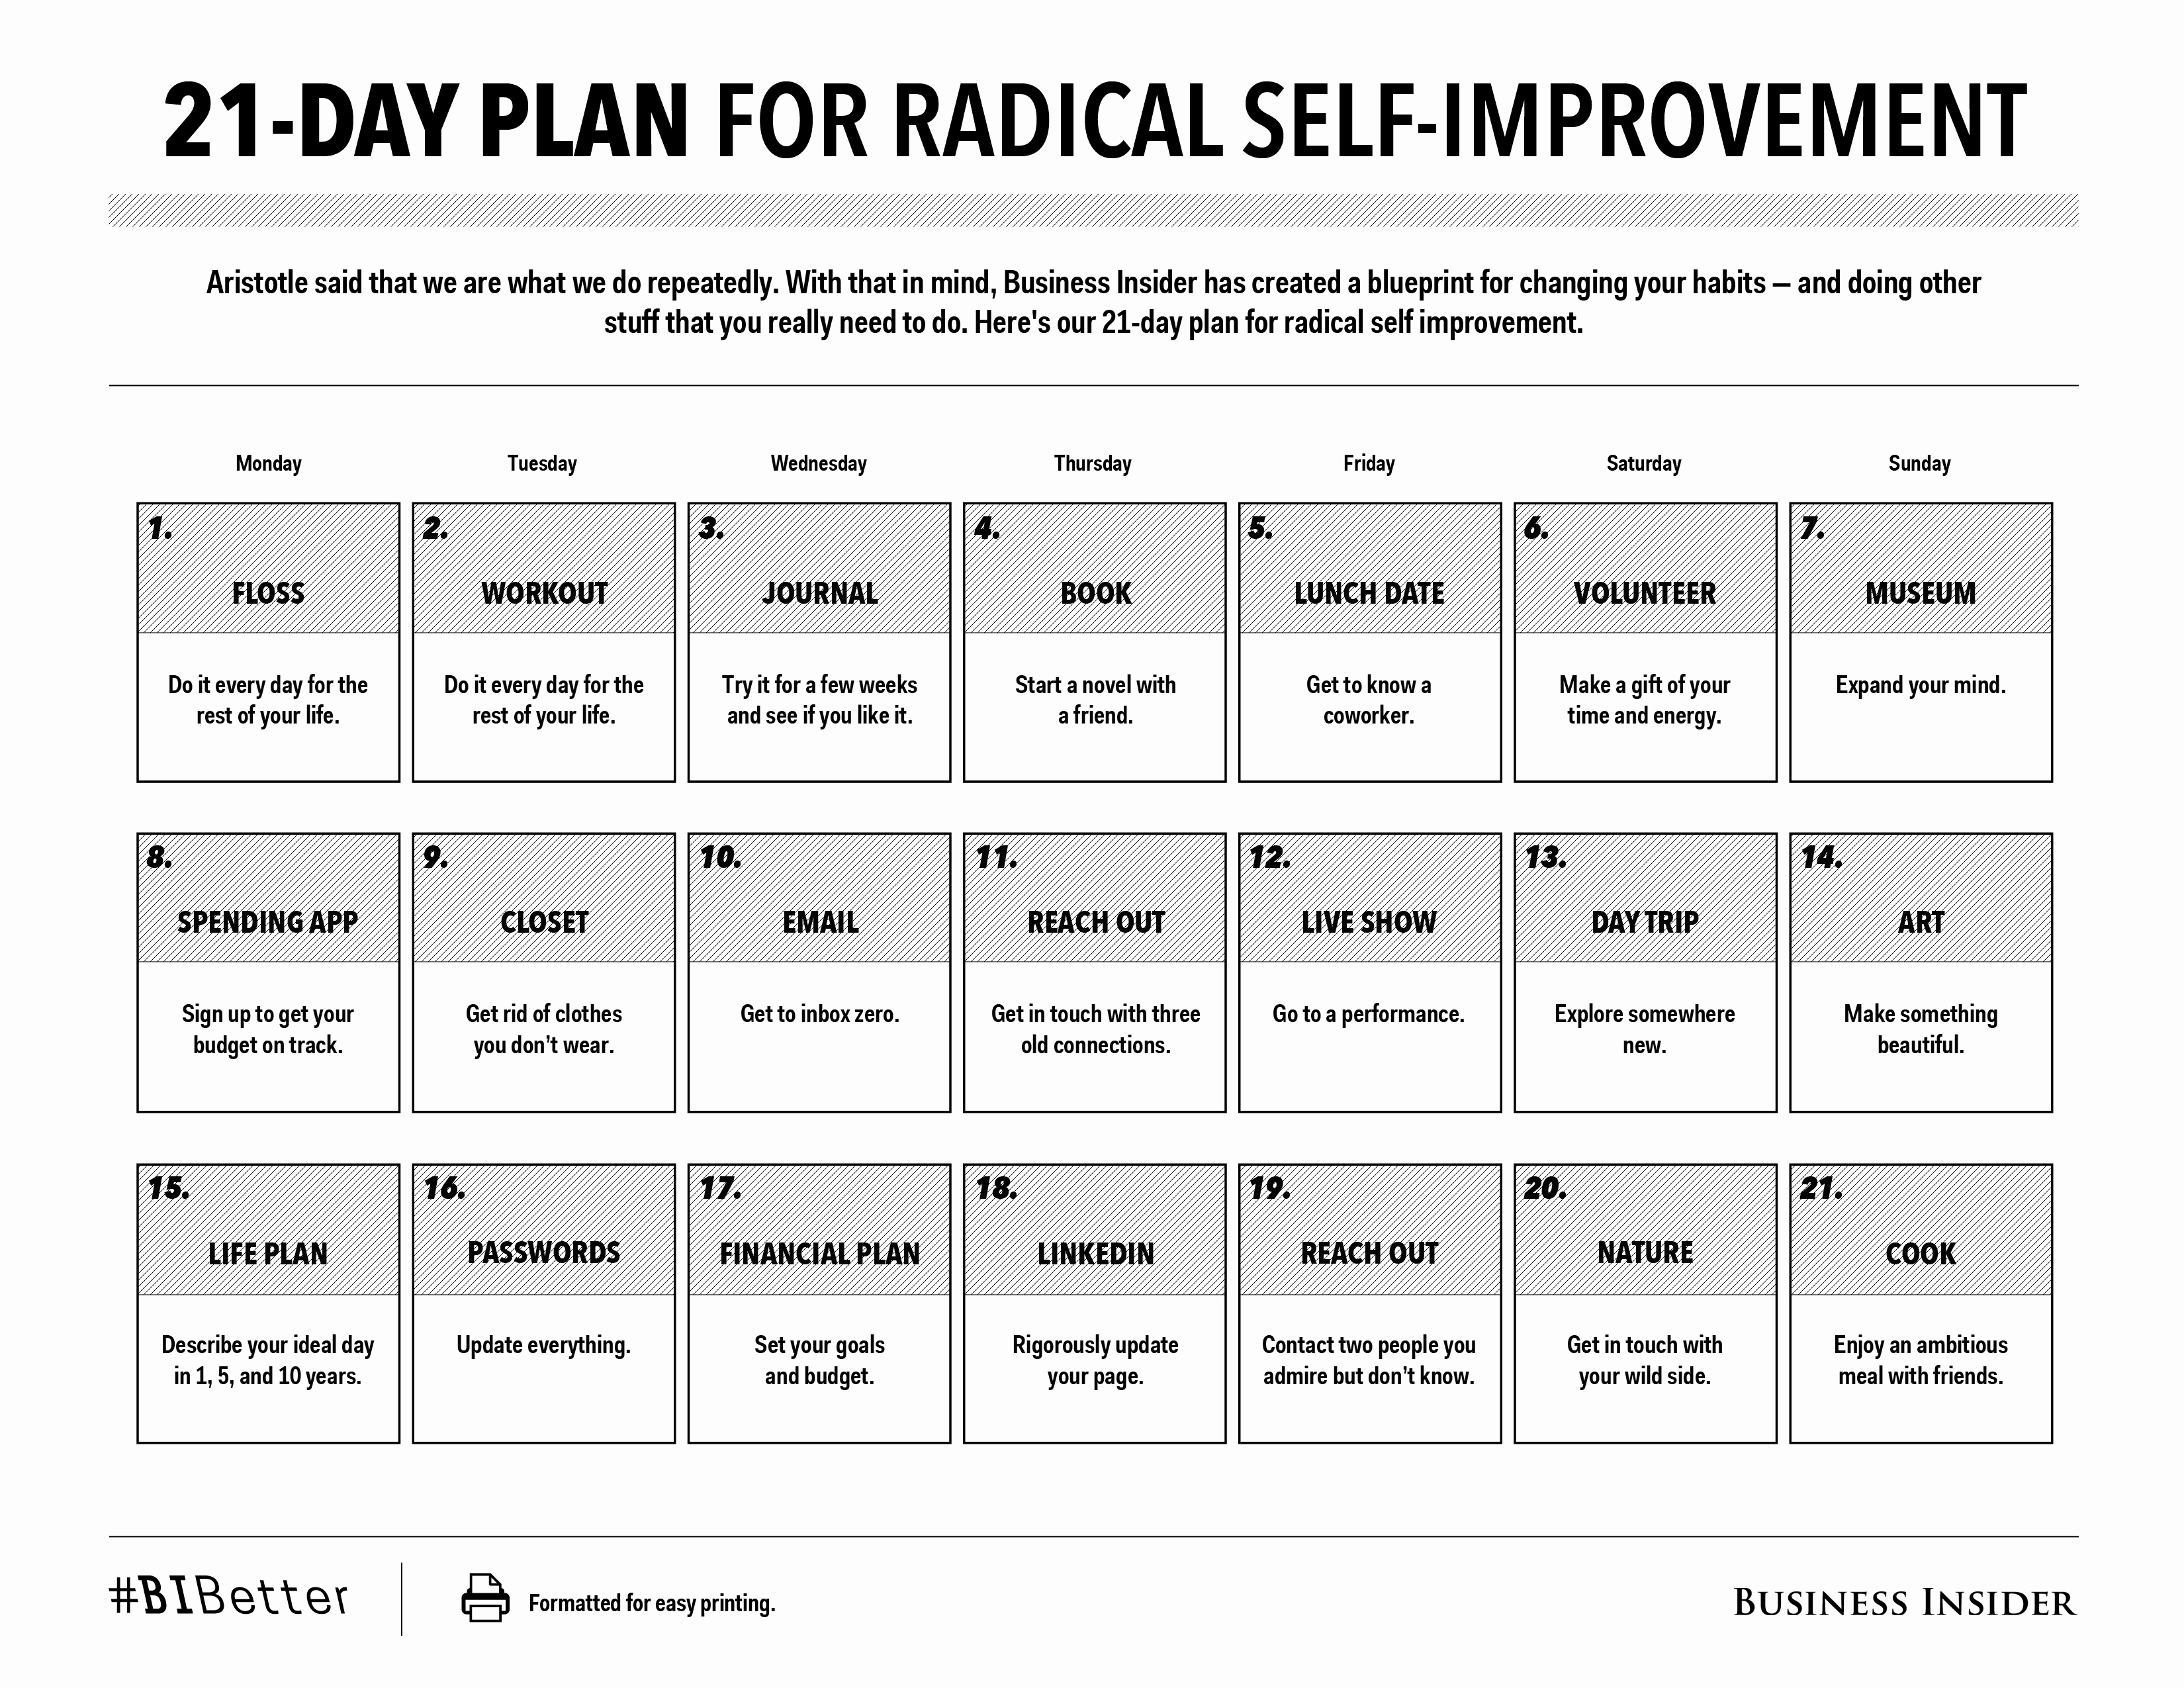 Personal Improvement Plan Template New 21 Day Plan for Radical Self Improvement [print Friendly